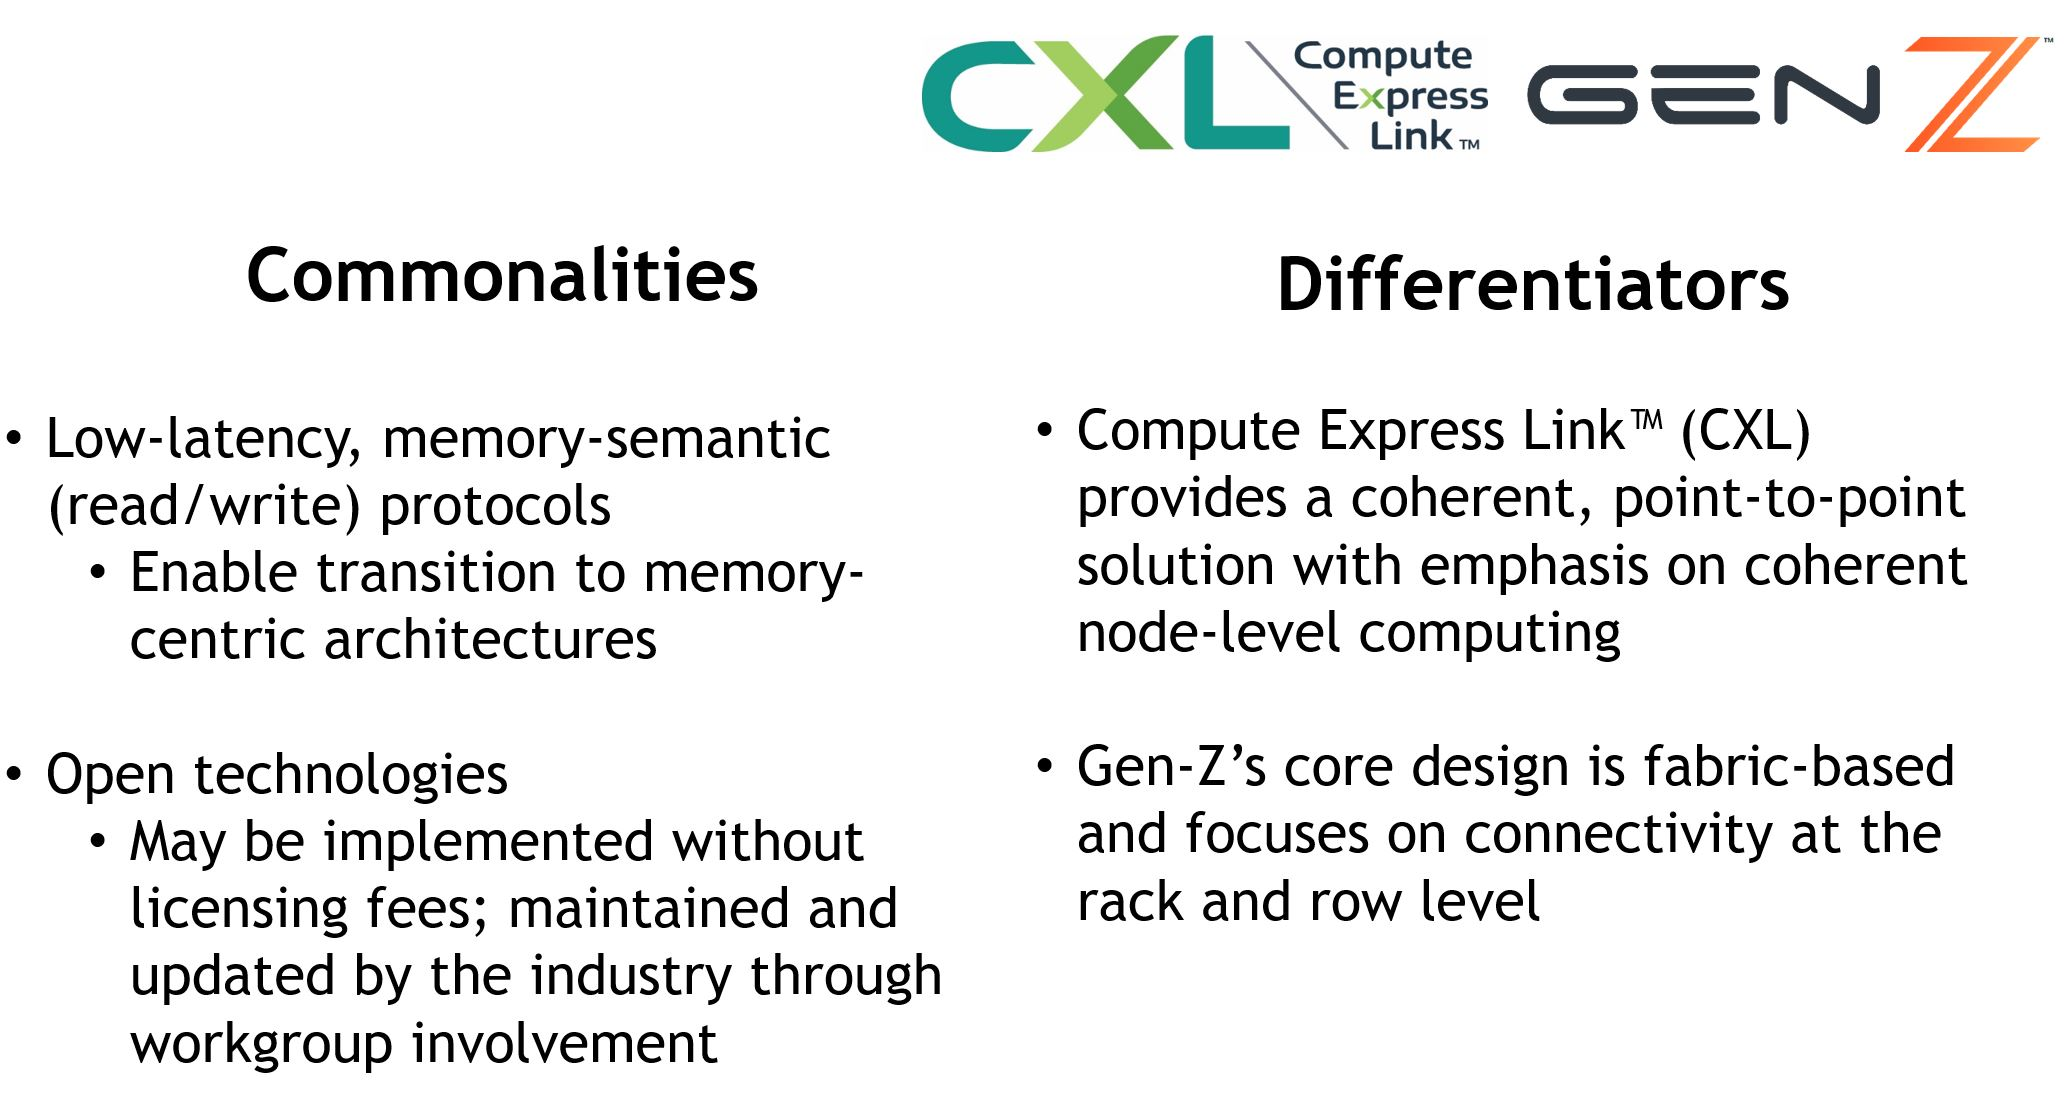 CXL And Gen Z MOU Commonalities And Differentiators